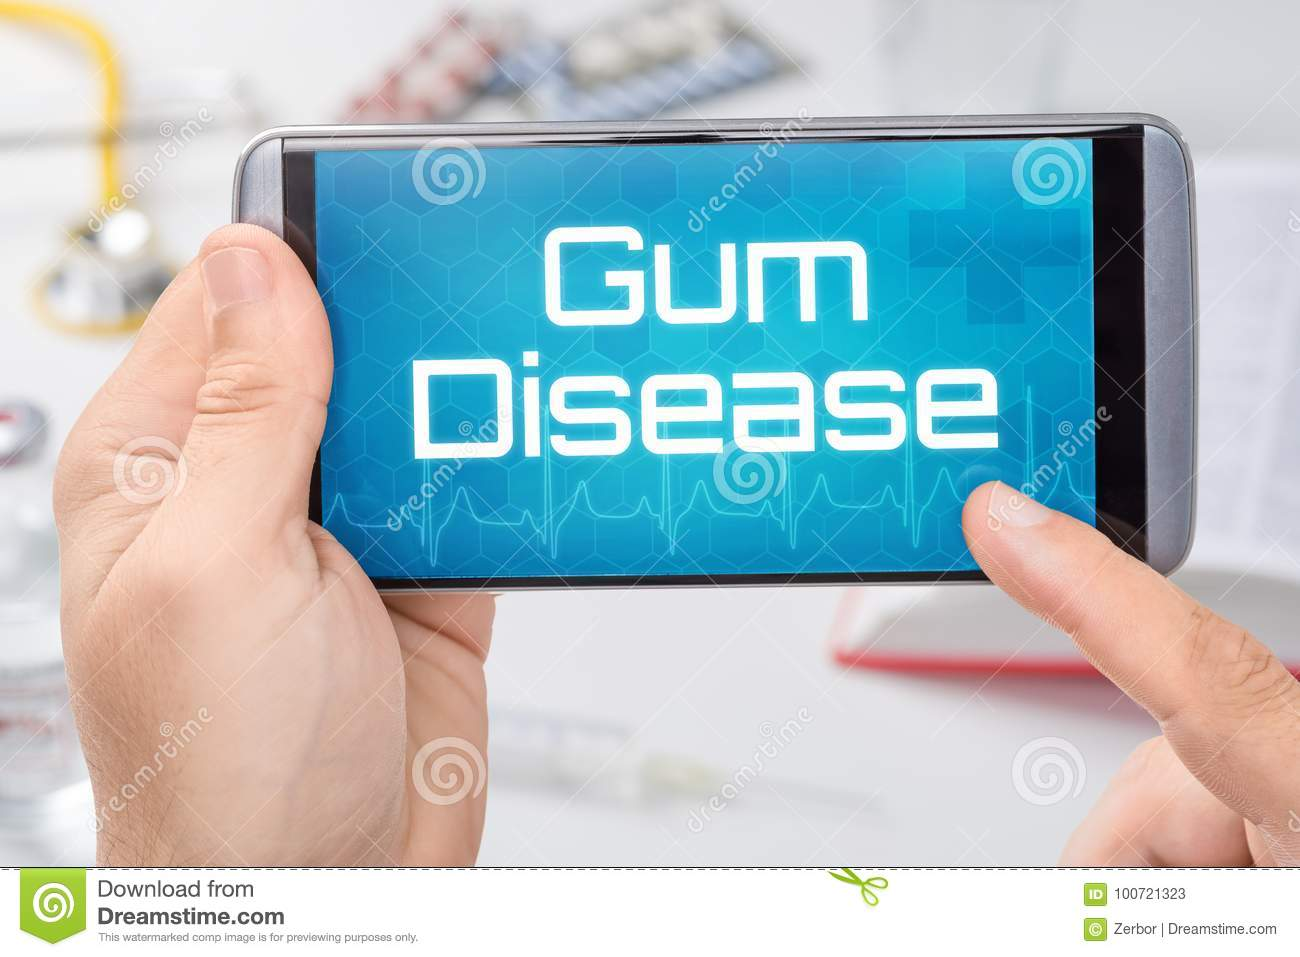 Smartphone with the text Gum Disease